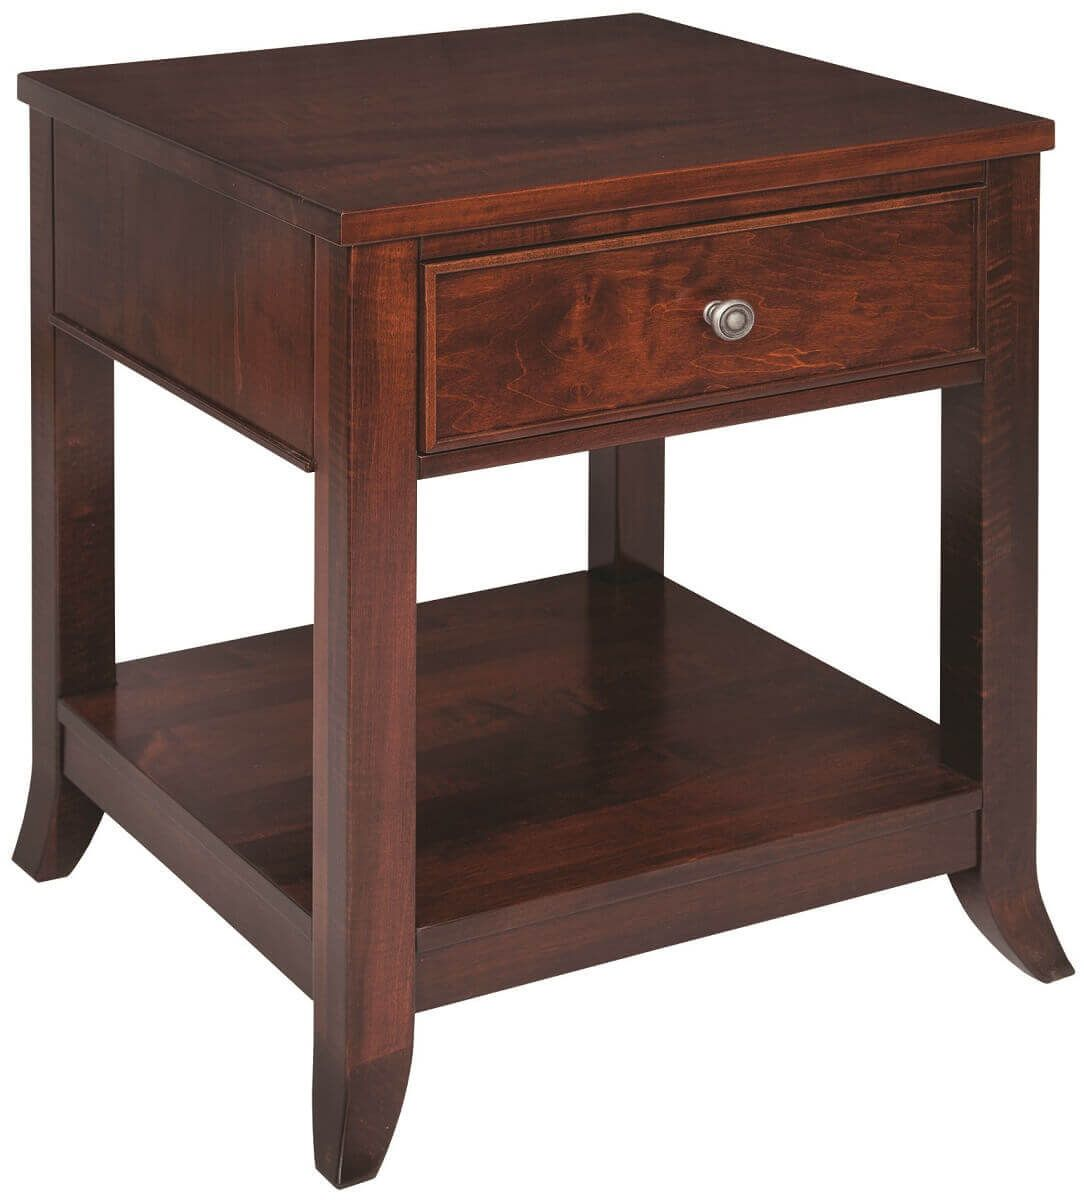 Ekron 1-Drawer Nightstand